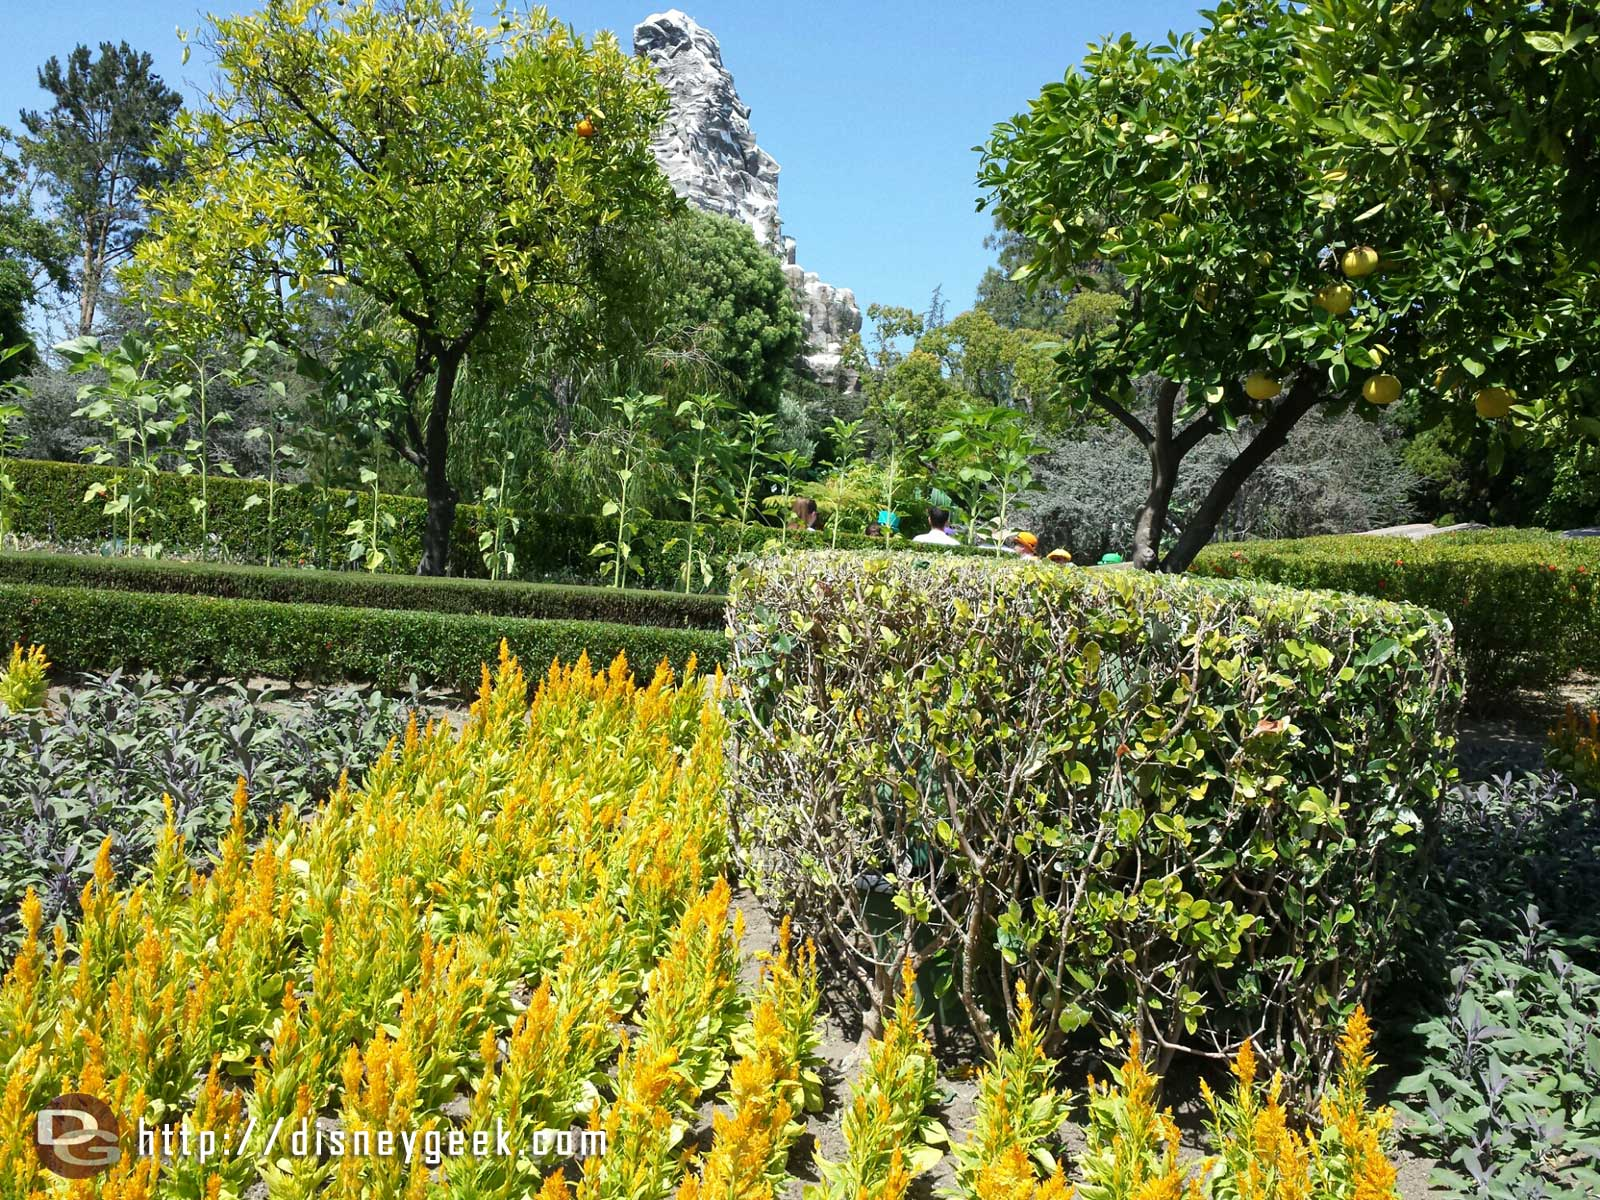 Tomorrowland plants and the Matterhorn in the background